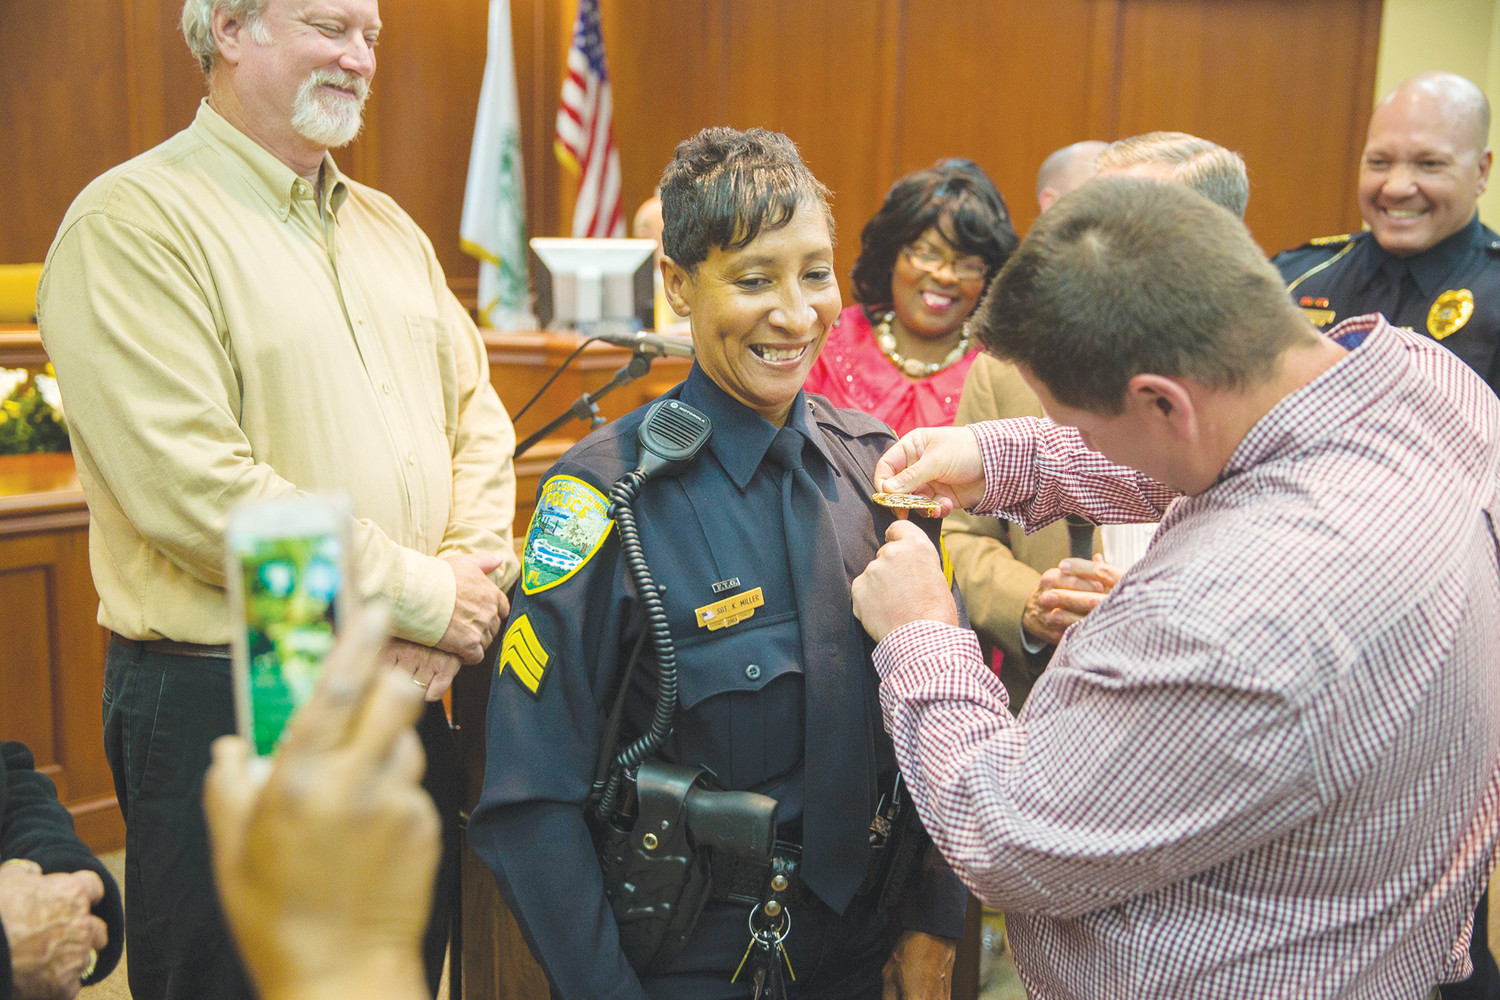 Green Cove Springs Police Officer Kimberly Miller is pinned by her husband after being promoted to the rank of sergeant Tuesday evening during the Green Cove Springs City Council meeting.